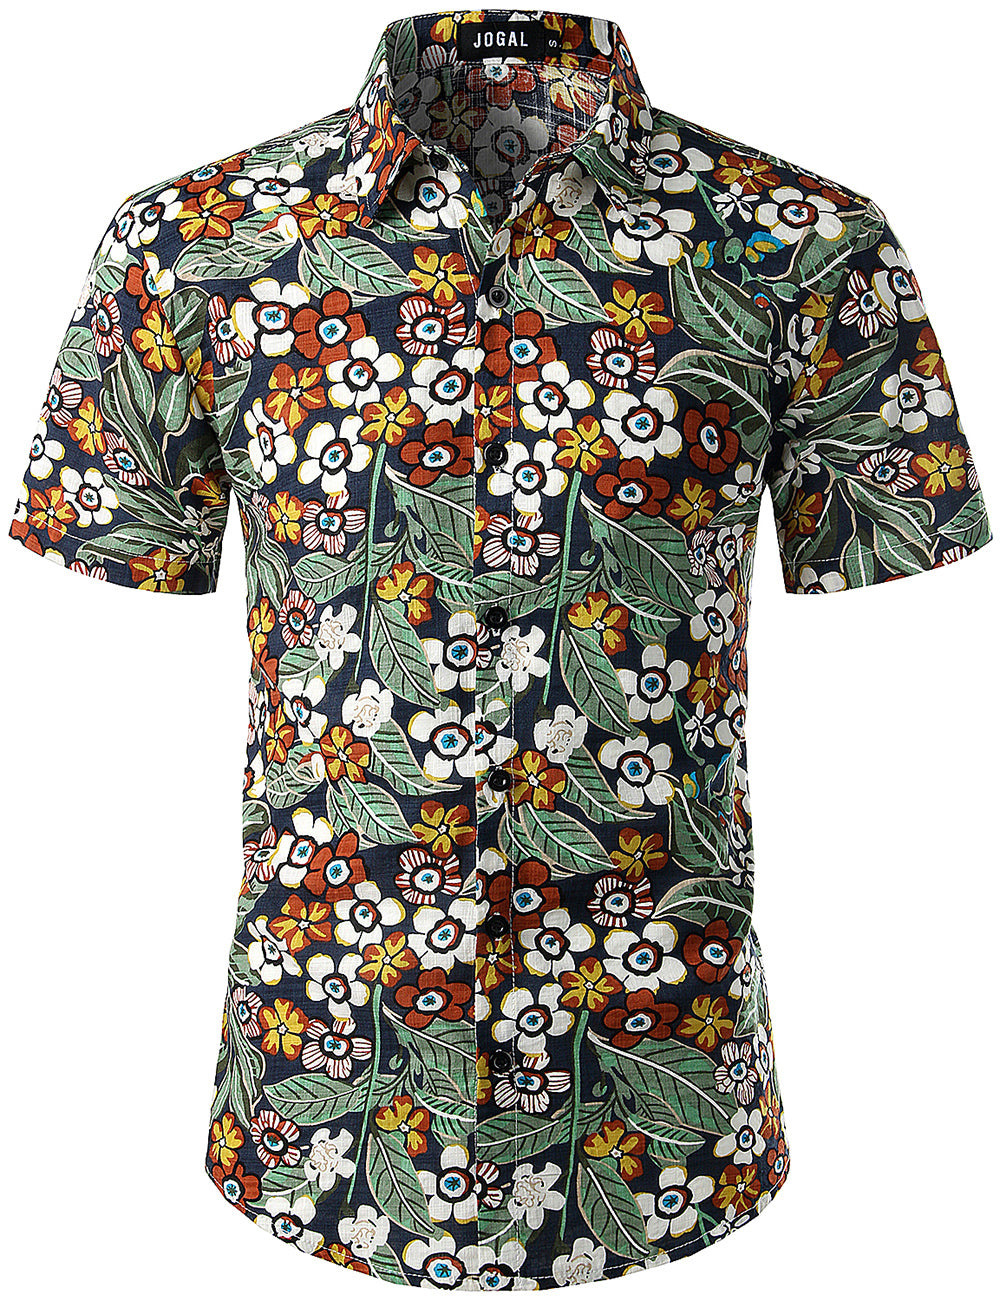 JOGAL Men's Flower Casual Button Down Short Sleeve Hawaiian Shirt(NavyCartoon)